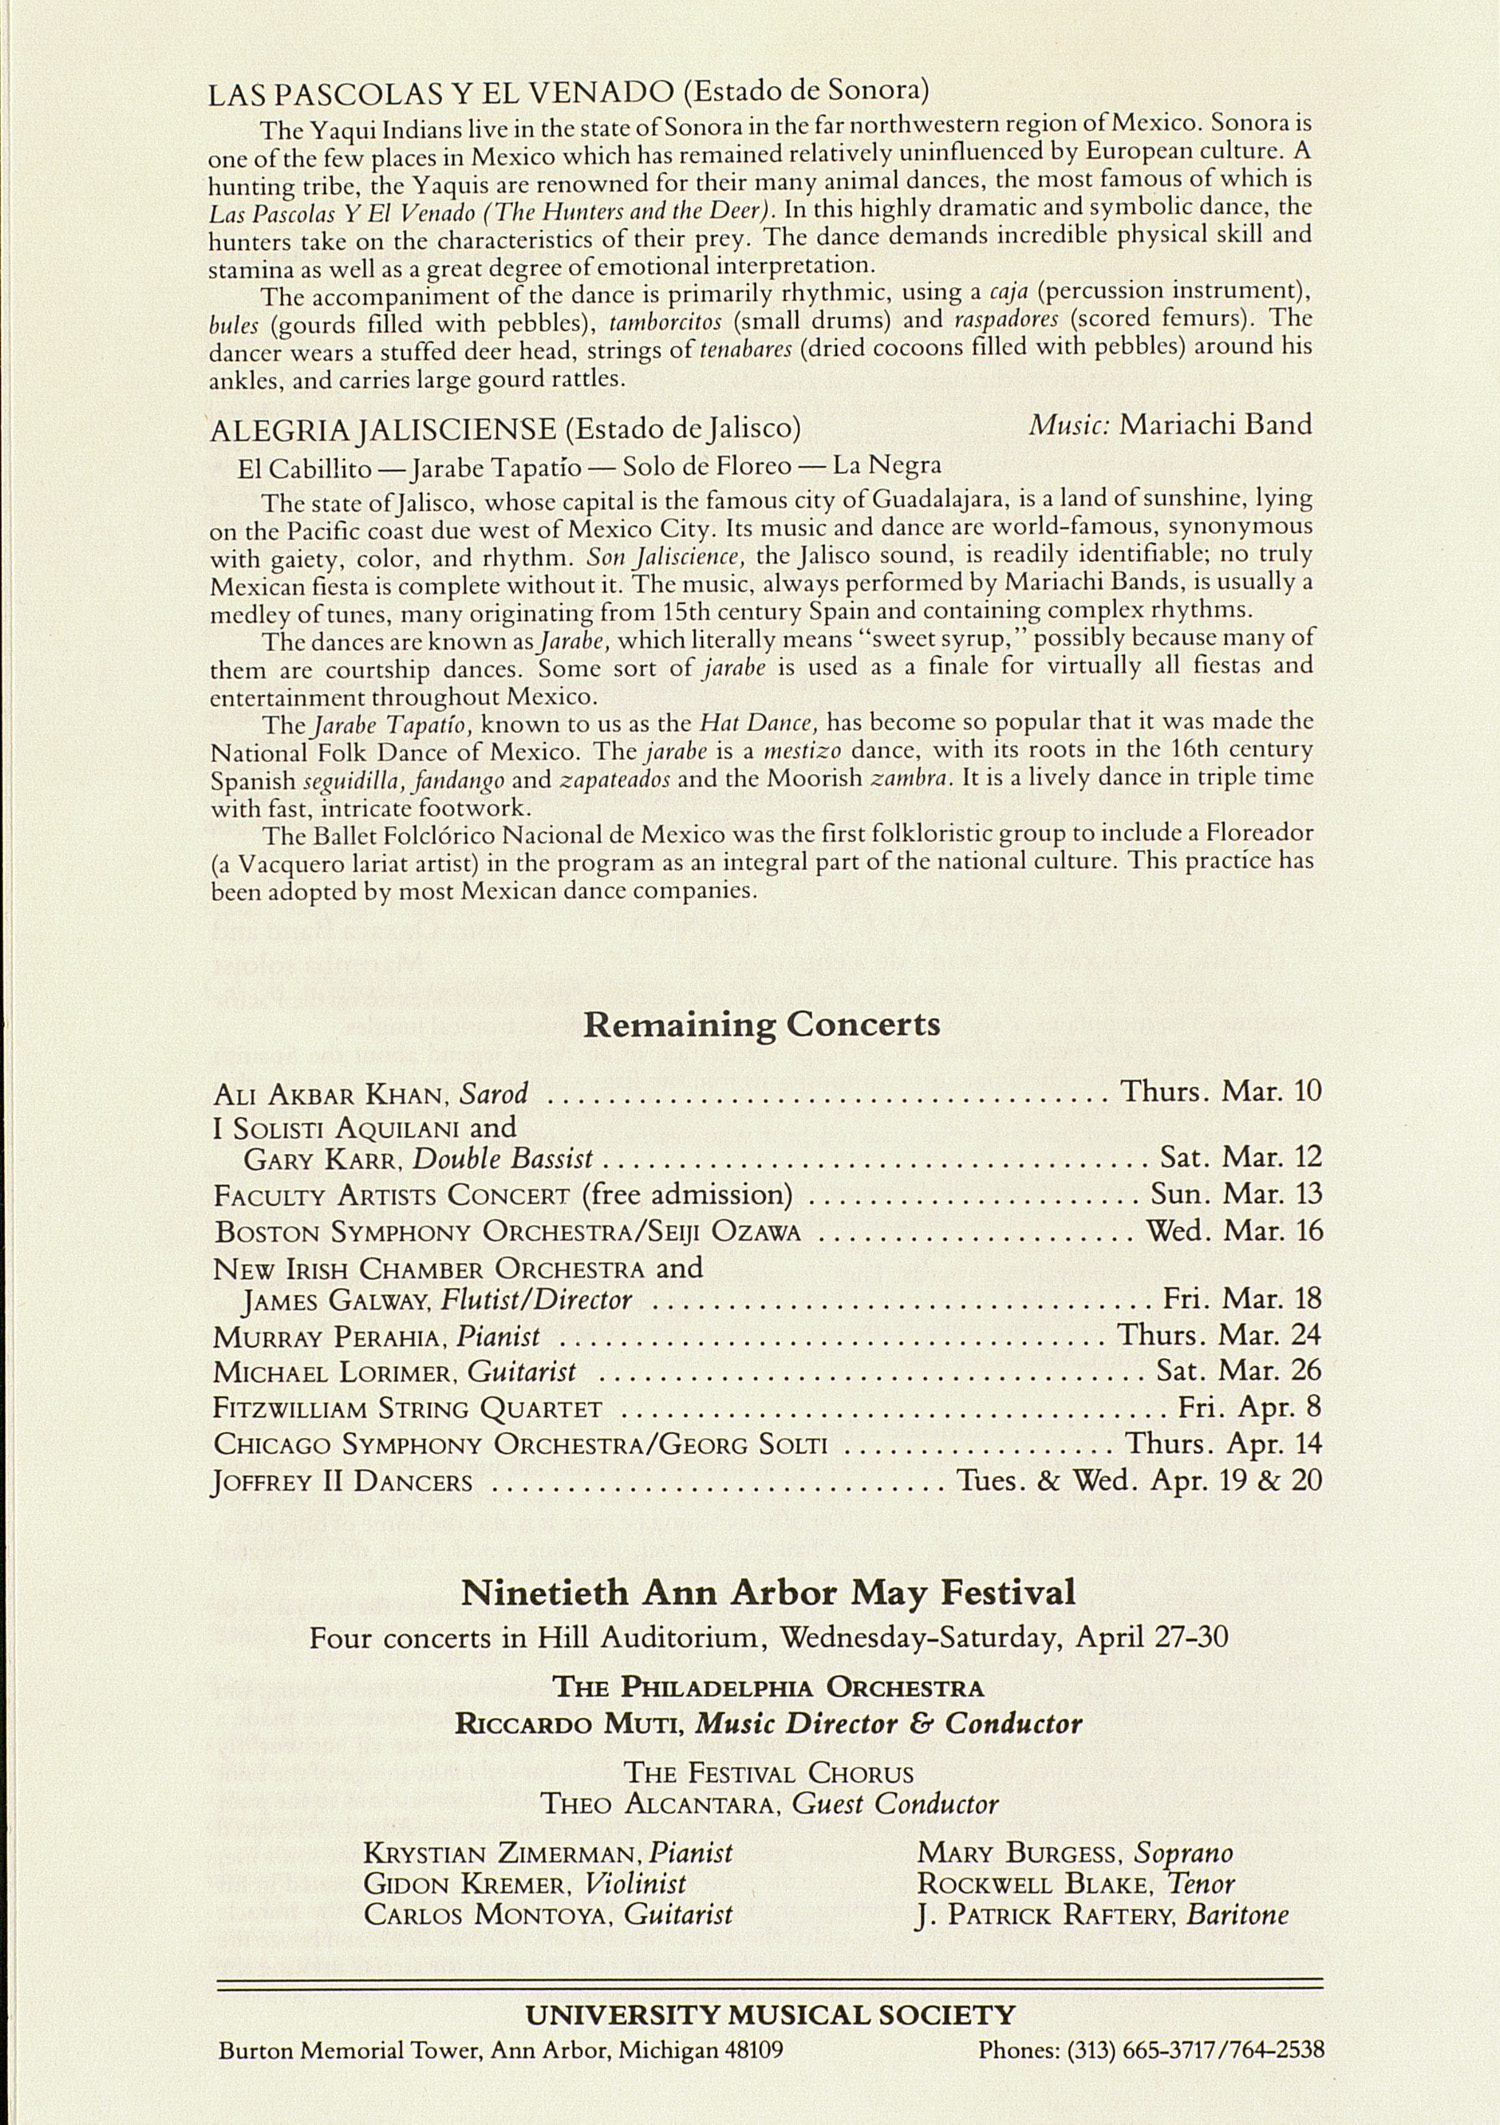 UMS Concert Program, March 8, 1983: Ballet Folclorico Nacional --  image